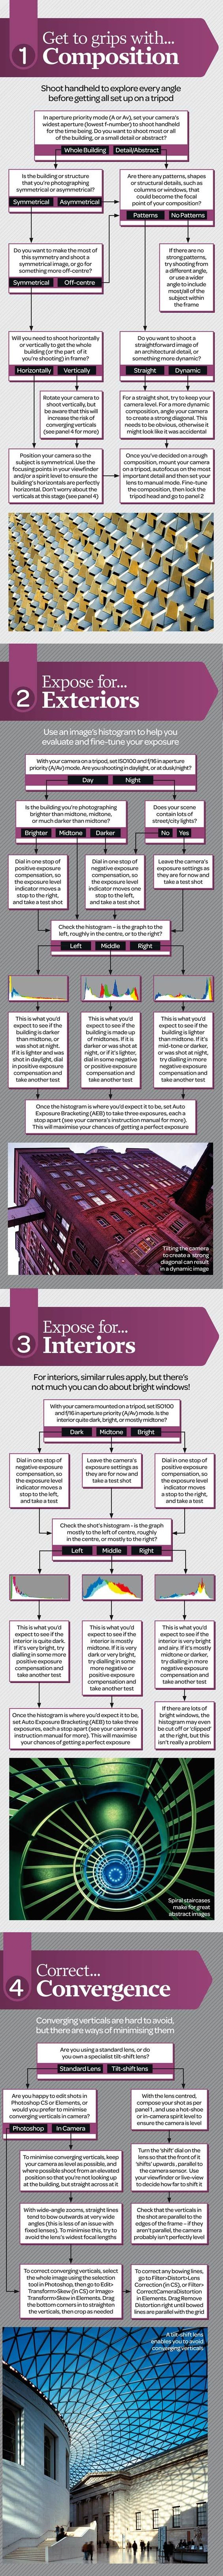 Architecture photography cheat sheet: tips for shooting exteriors, interiors and more.